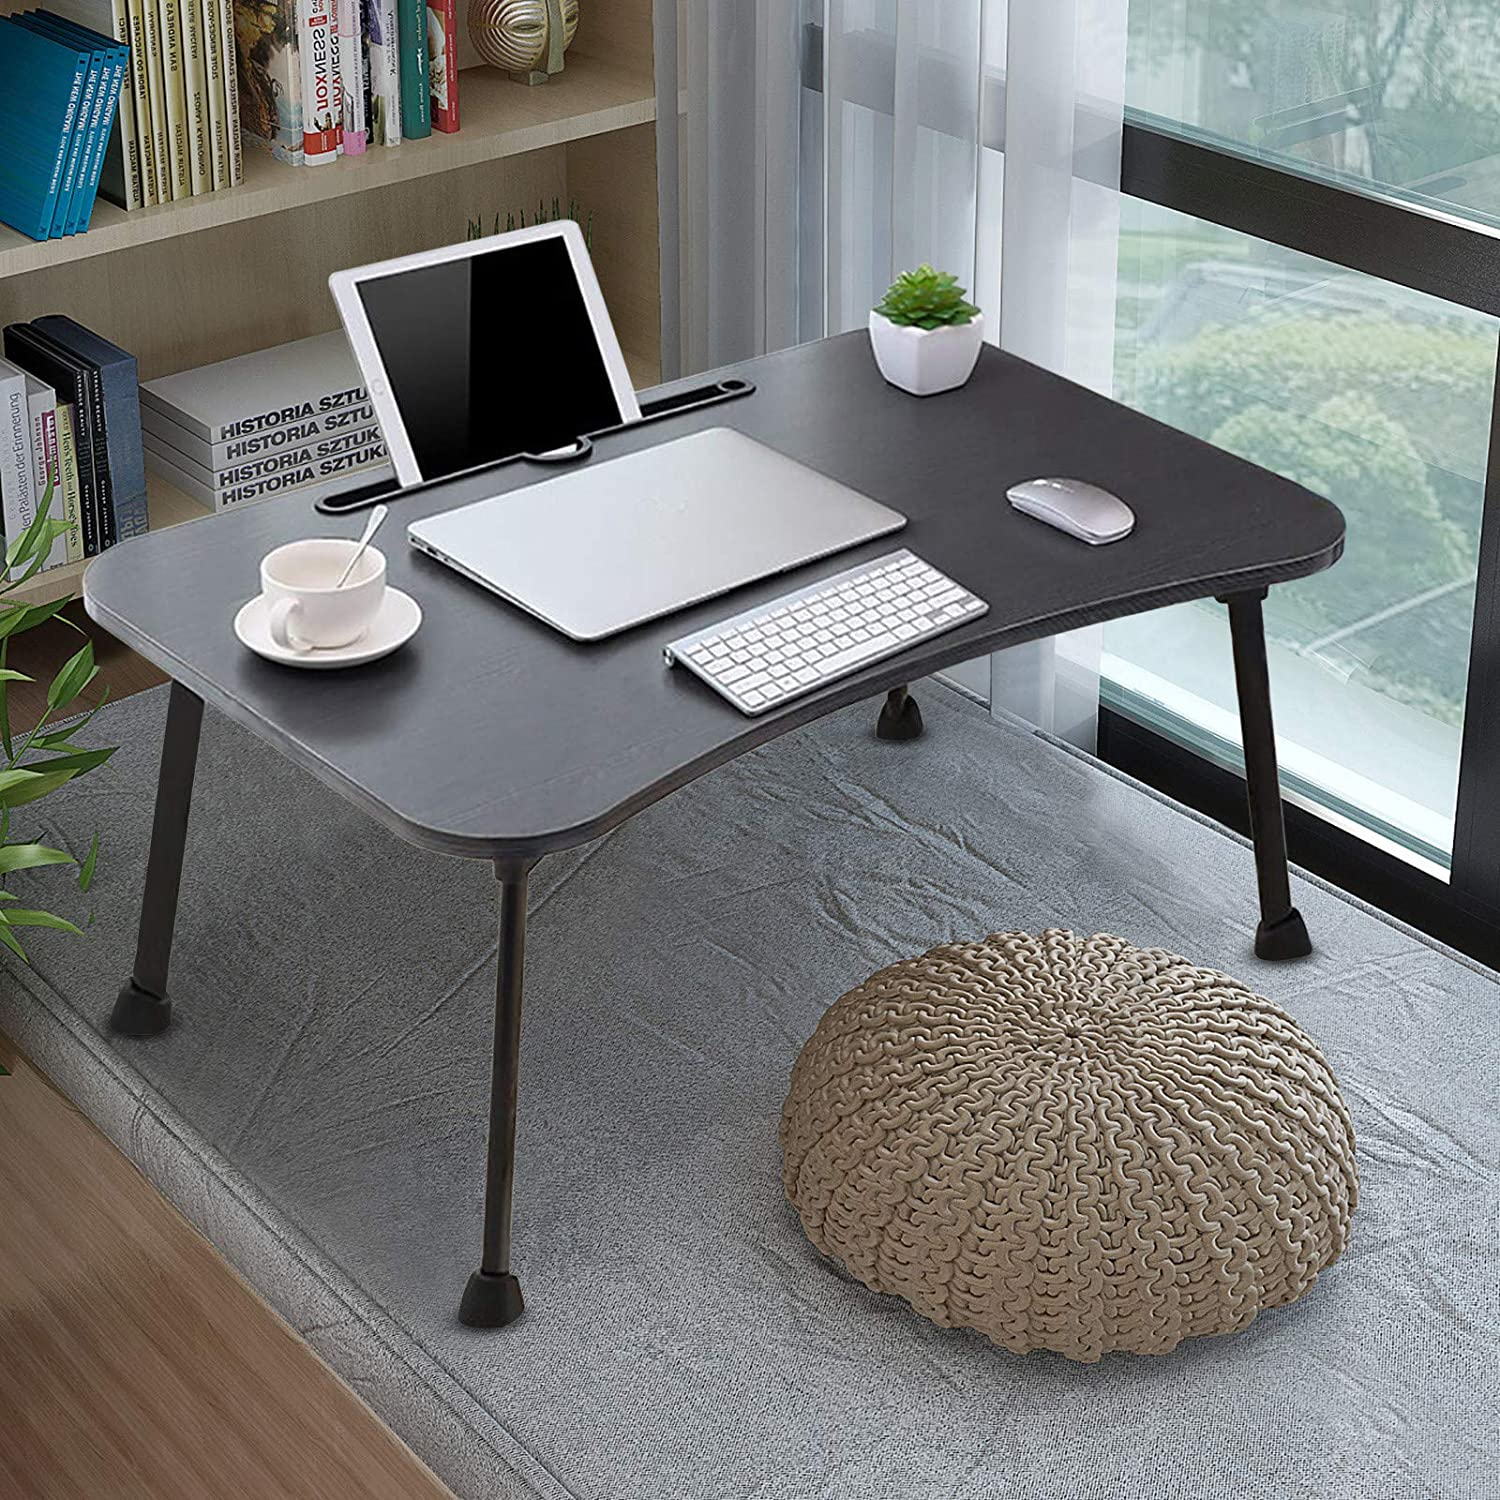 JOSHUA Multifunction Lap Desk - Fits to 2021 autumn and Wholesale winter new 17 Laptop up inches